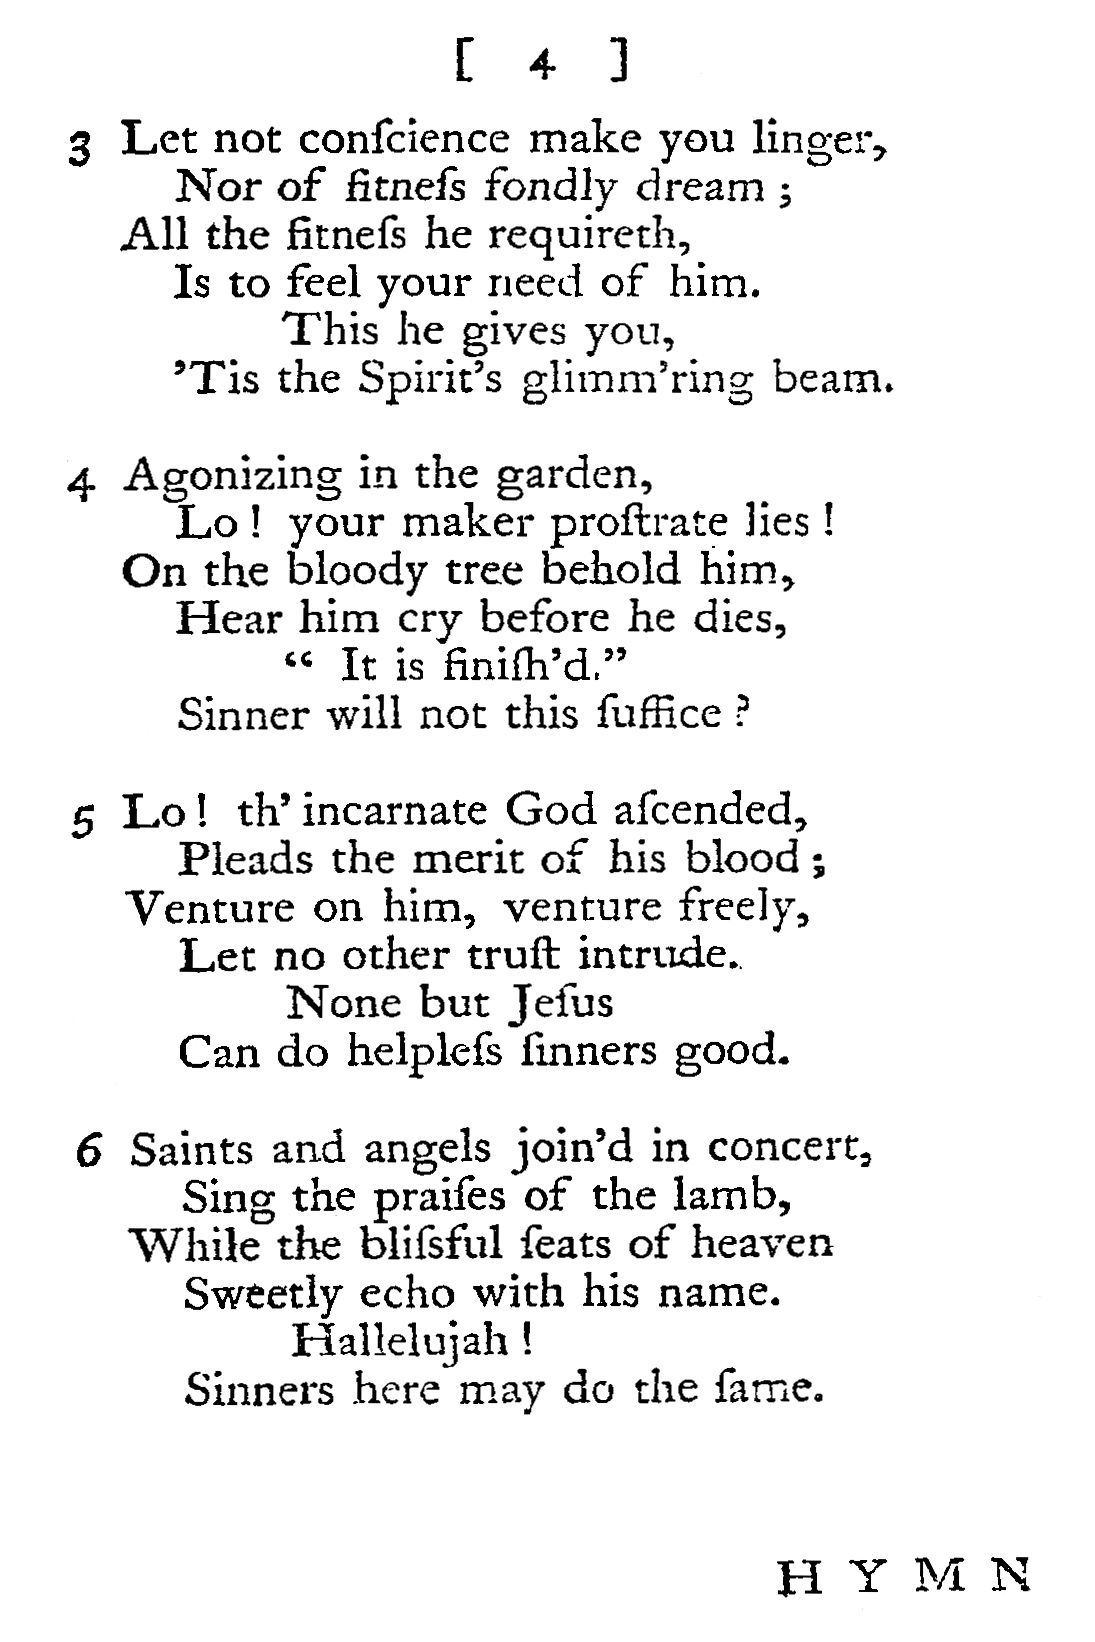 Fig. 2.  Richard Conyers,  A Collection of Psalms and Hymns  (London: T. & J.W. Pasham, 1767).